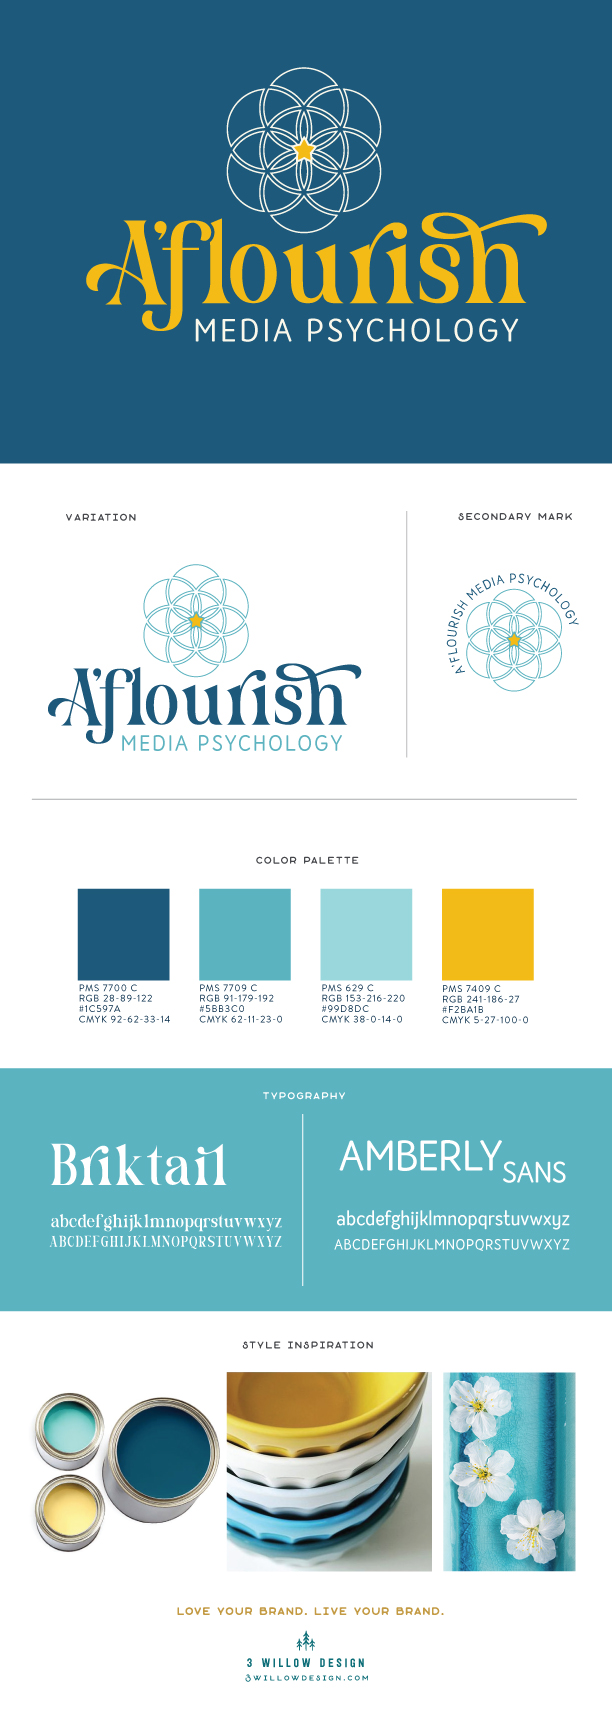 Branding and logo design for professionals